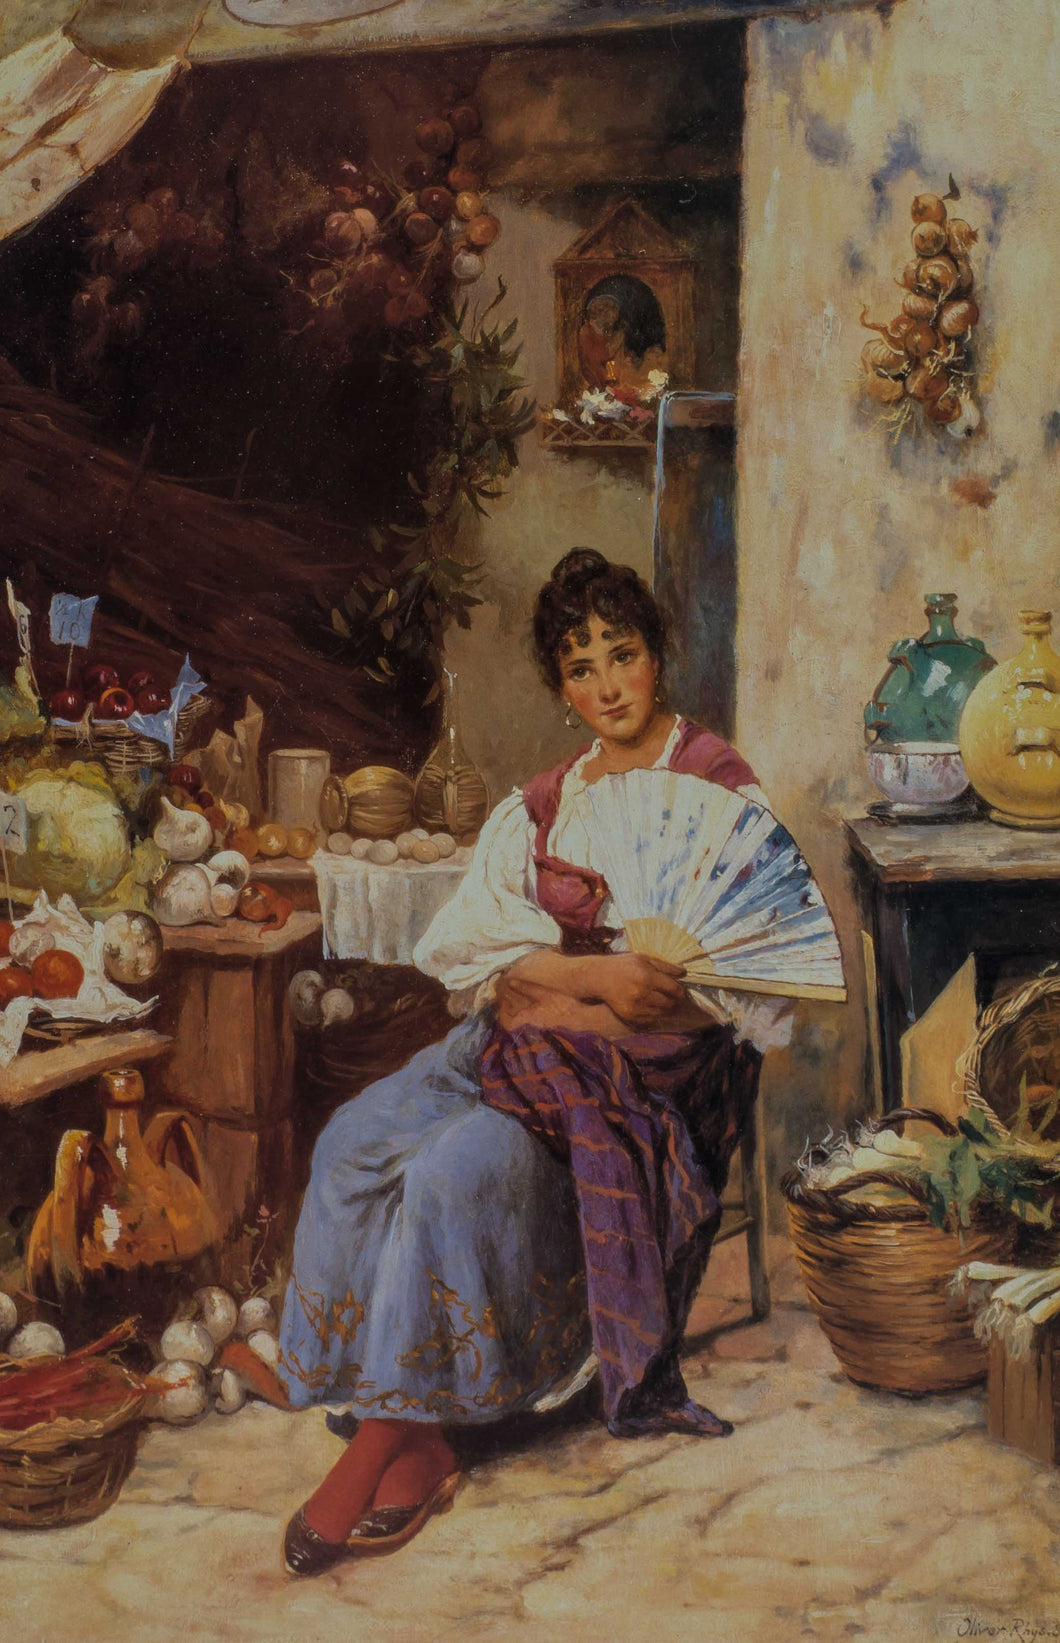 A Venice woman sits in the hot street market selling tomatoes, onions and garlic.